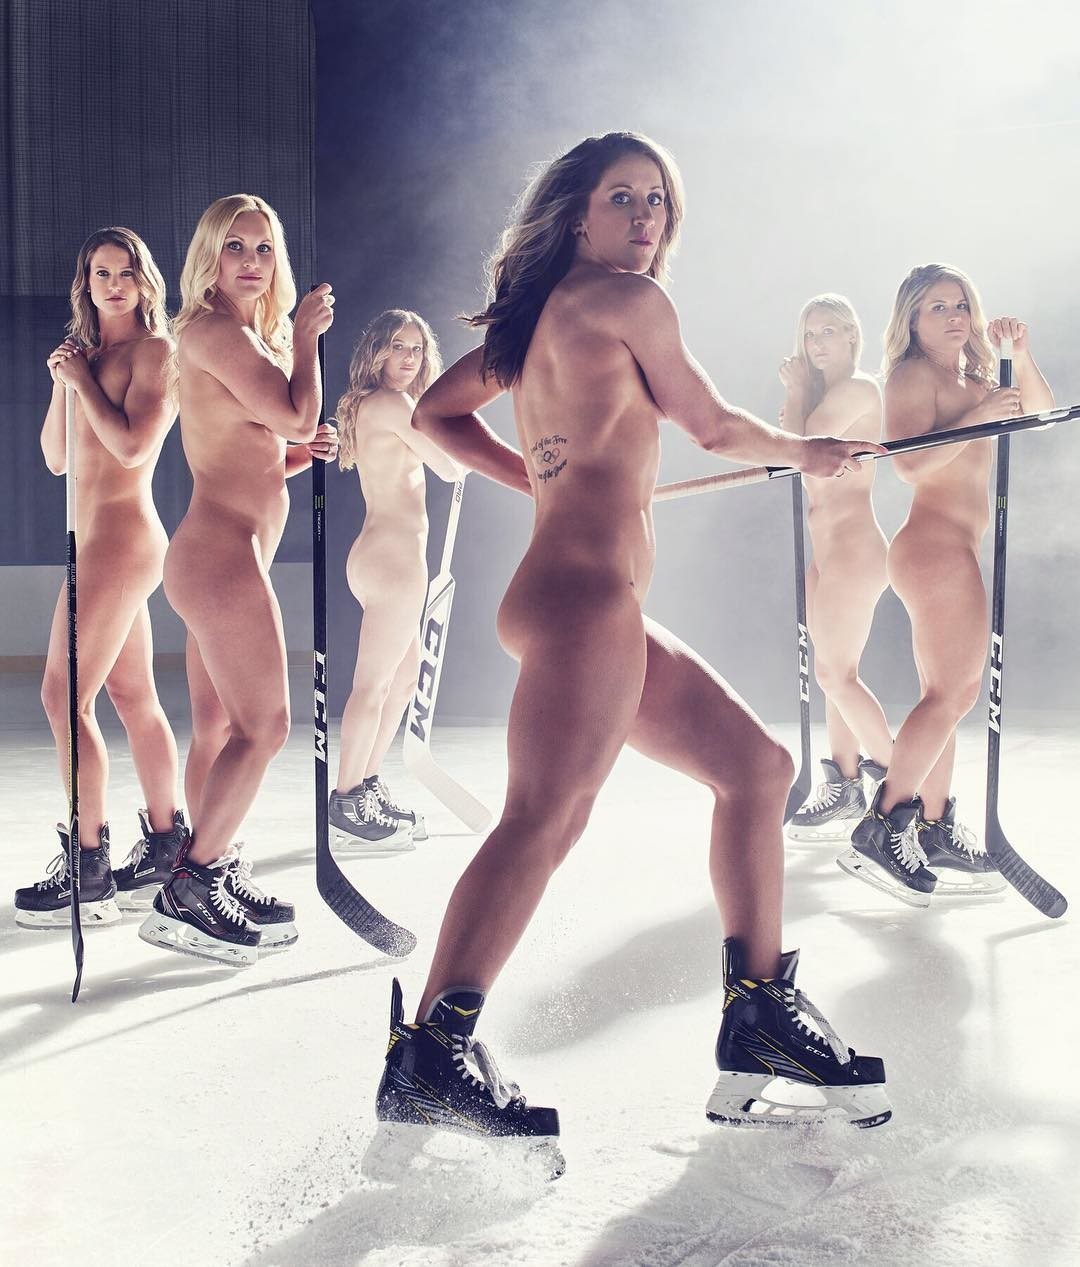 Hockey ice girls nude